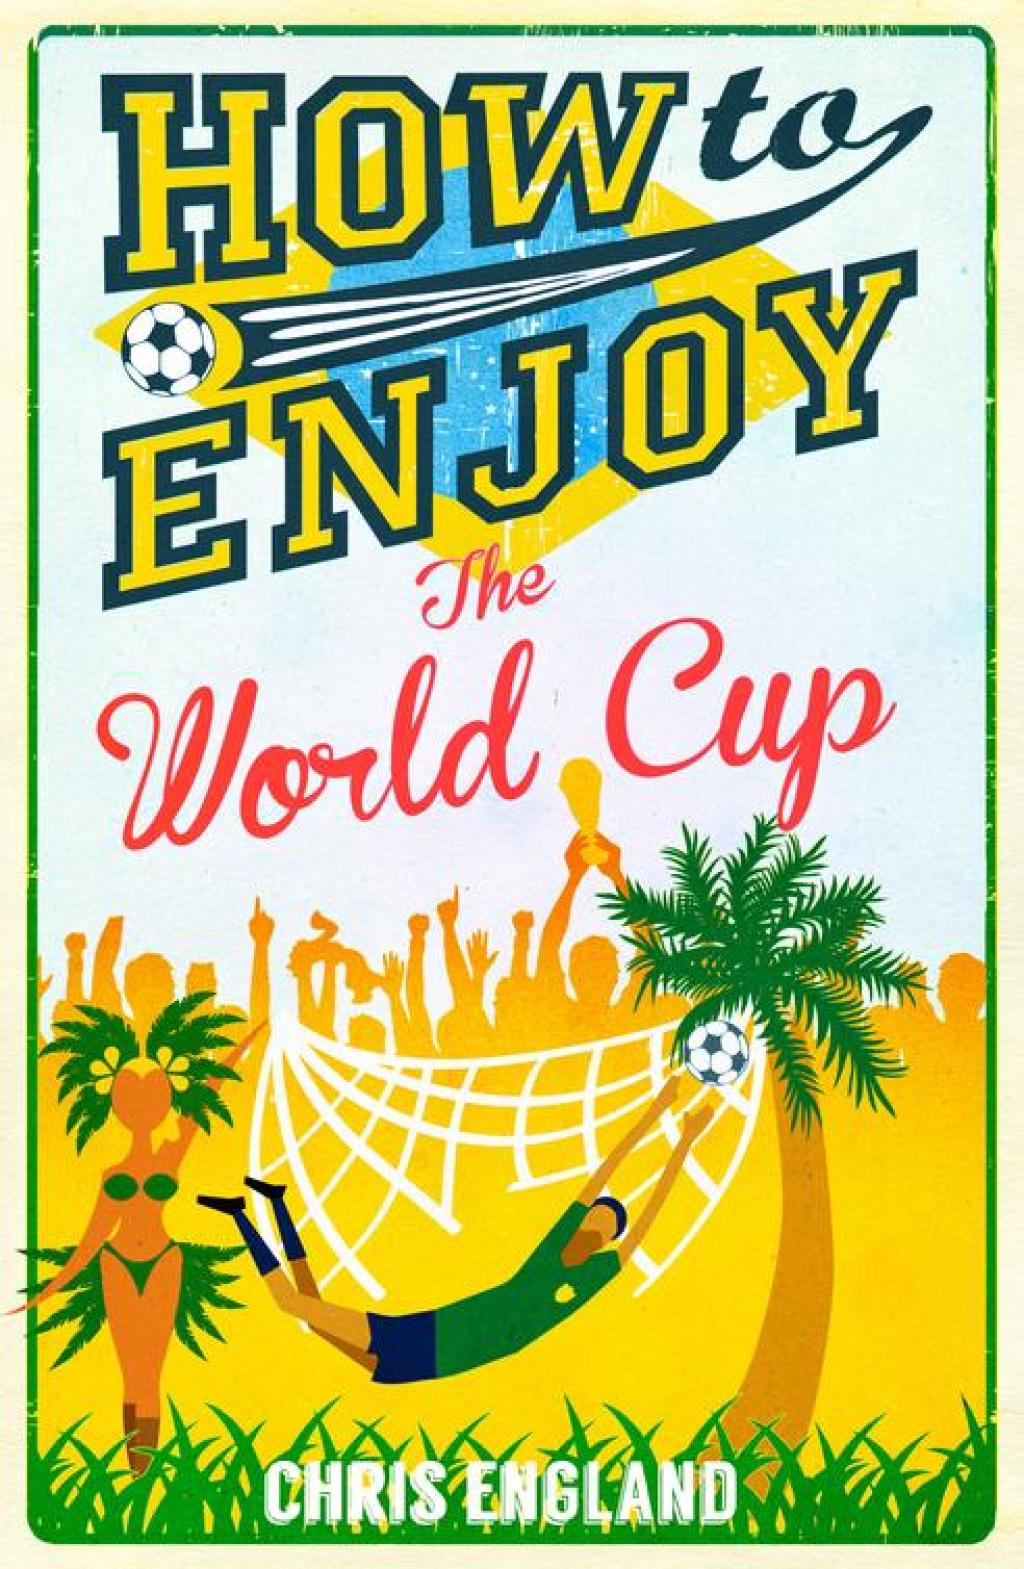 How to Enjoy the World Cup (ebook) eBooks